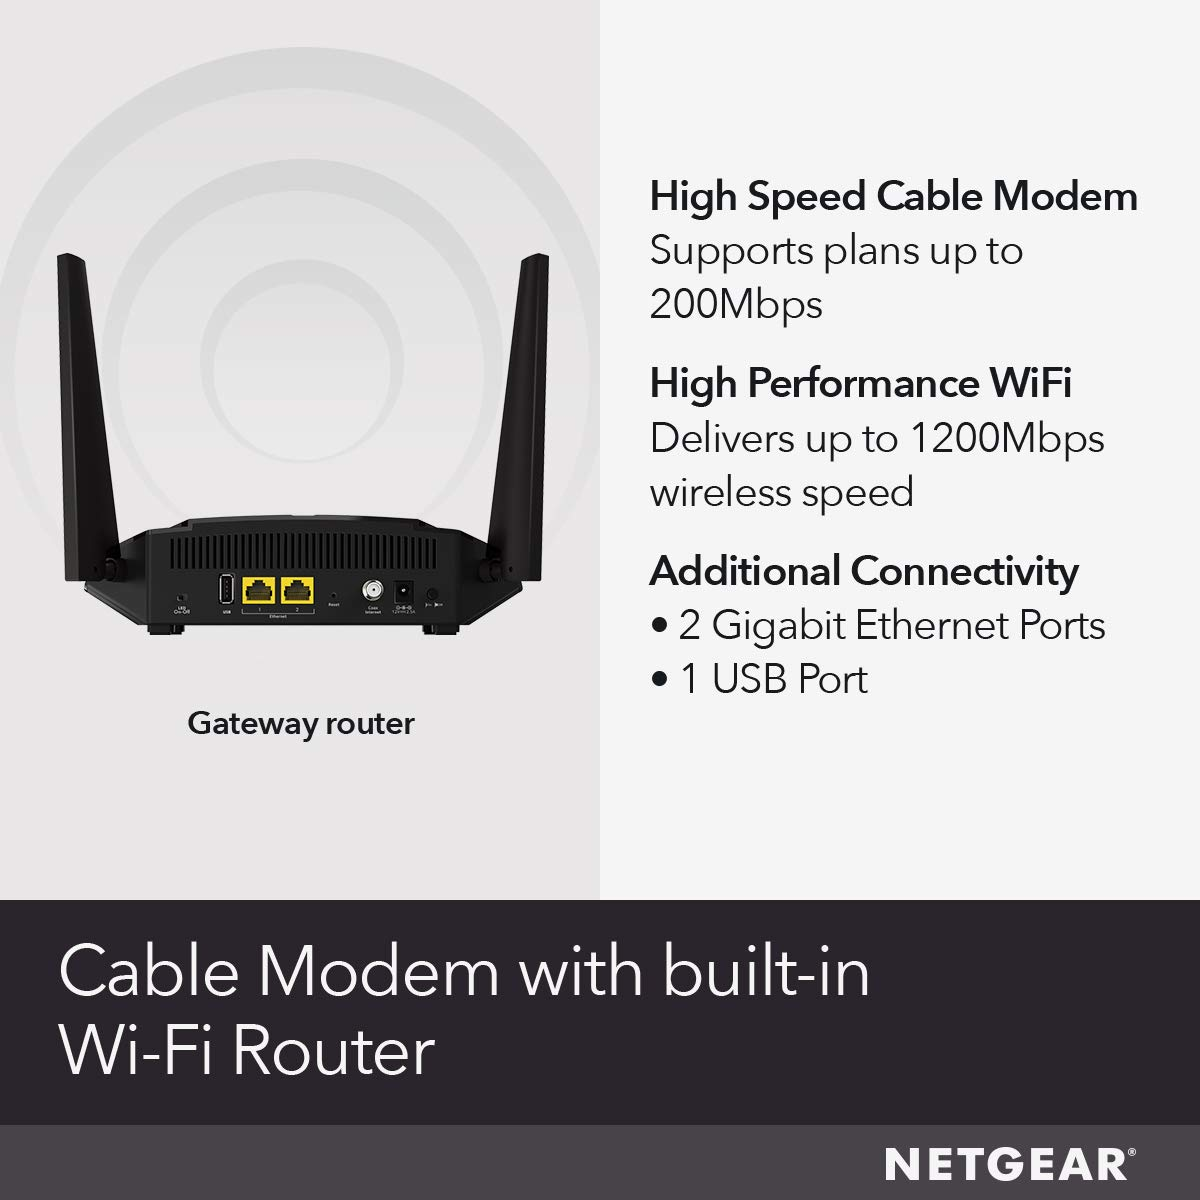 Cox DOCSIS 3.1 - Compatible with Cable Providers Including Xfinity by Comcast AC3200 WiFi Speed C7800 NETGEAR Nighthawk Cable Modem WiFi Router Combo Spectrum Cable Plans Up to 2 Gigabits